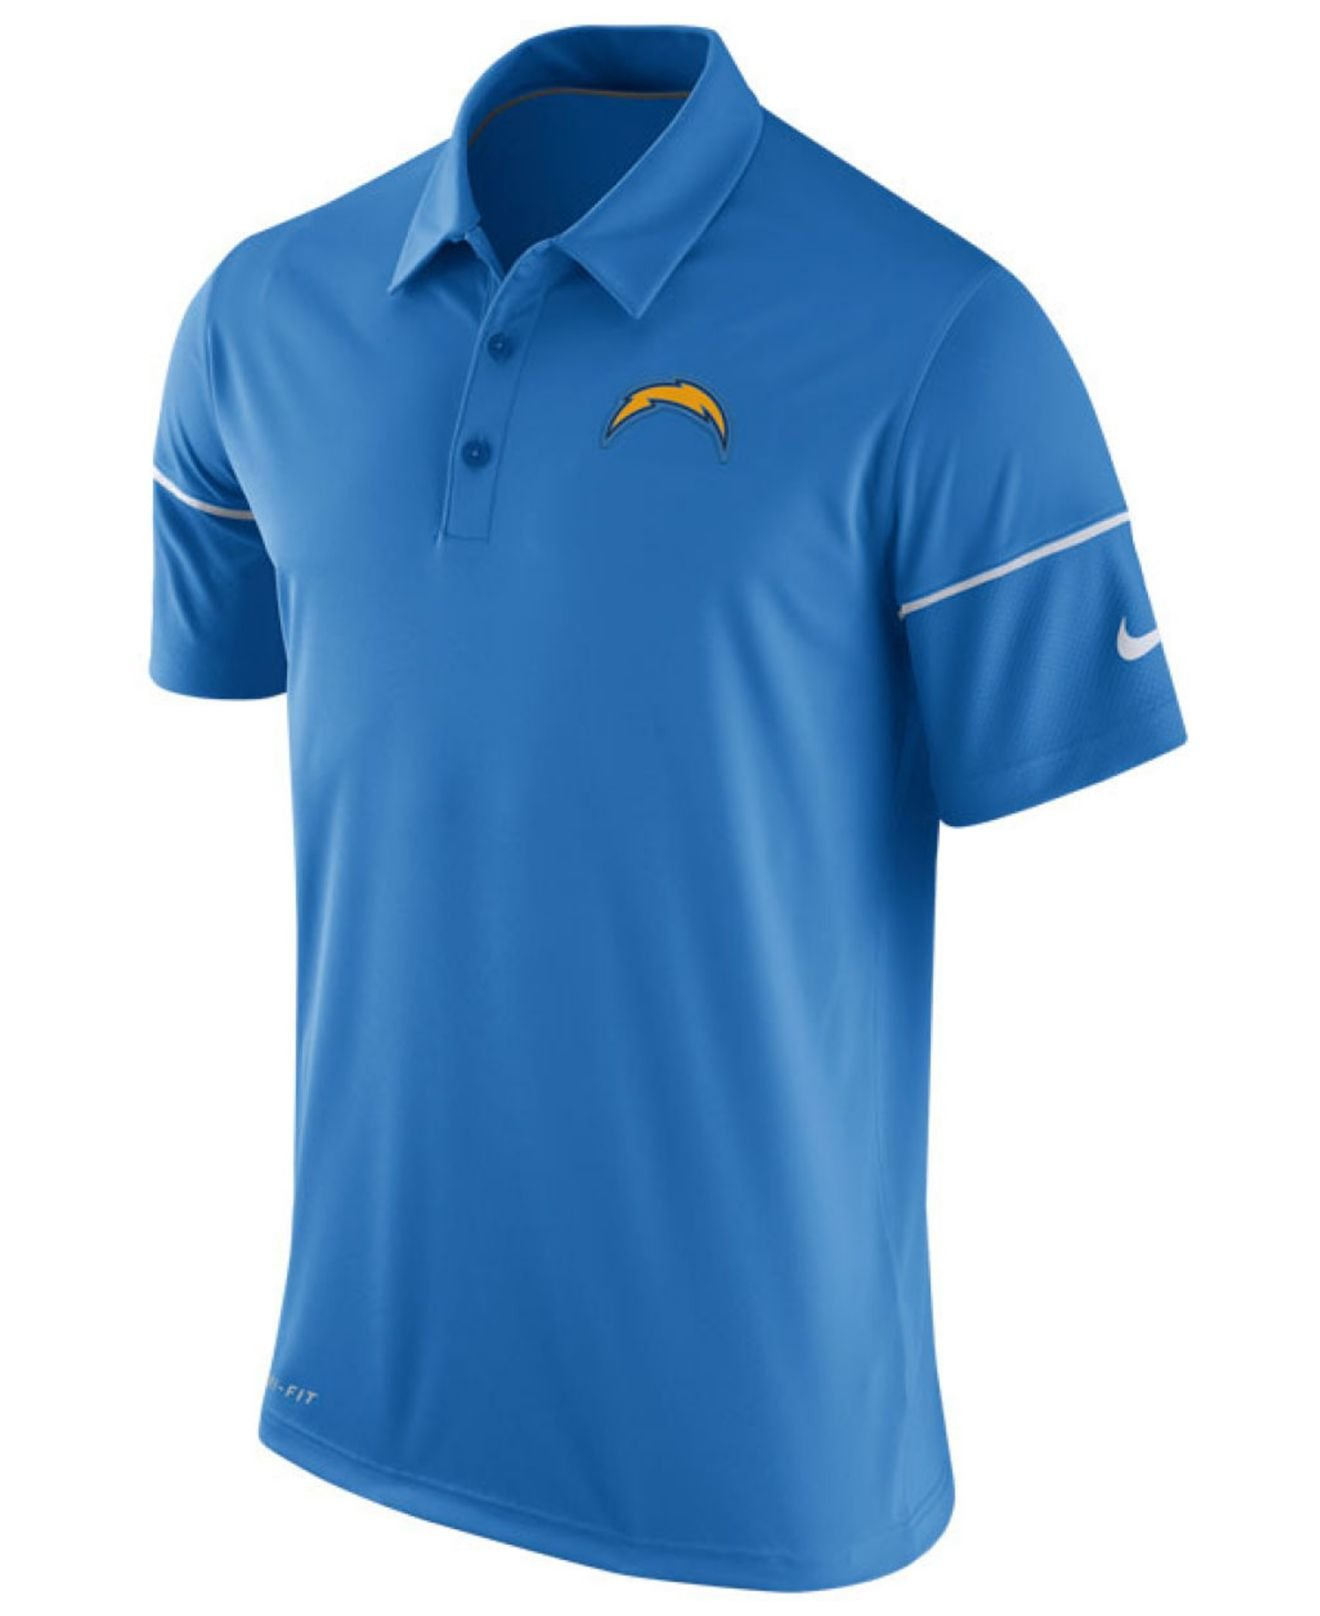 Nike Men S San Diego Chargers Team Issue Polo Shirt In